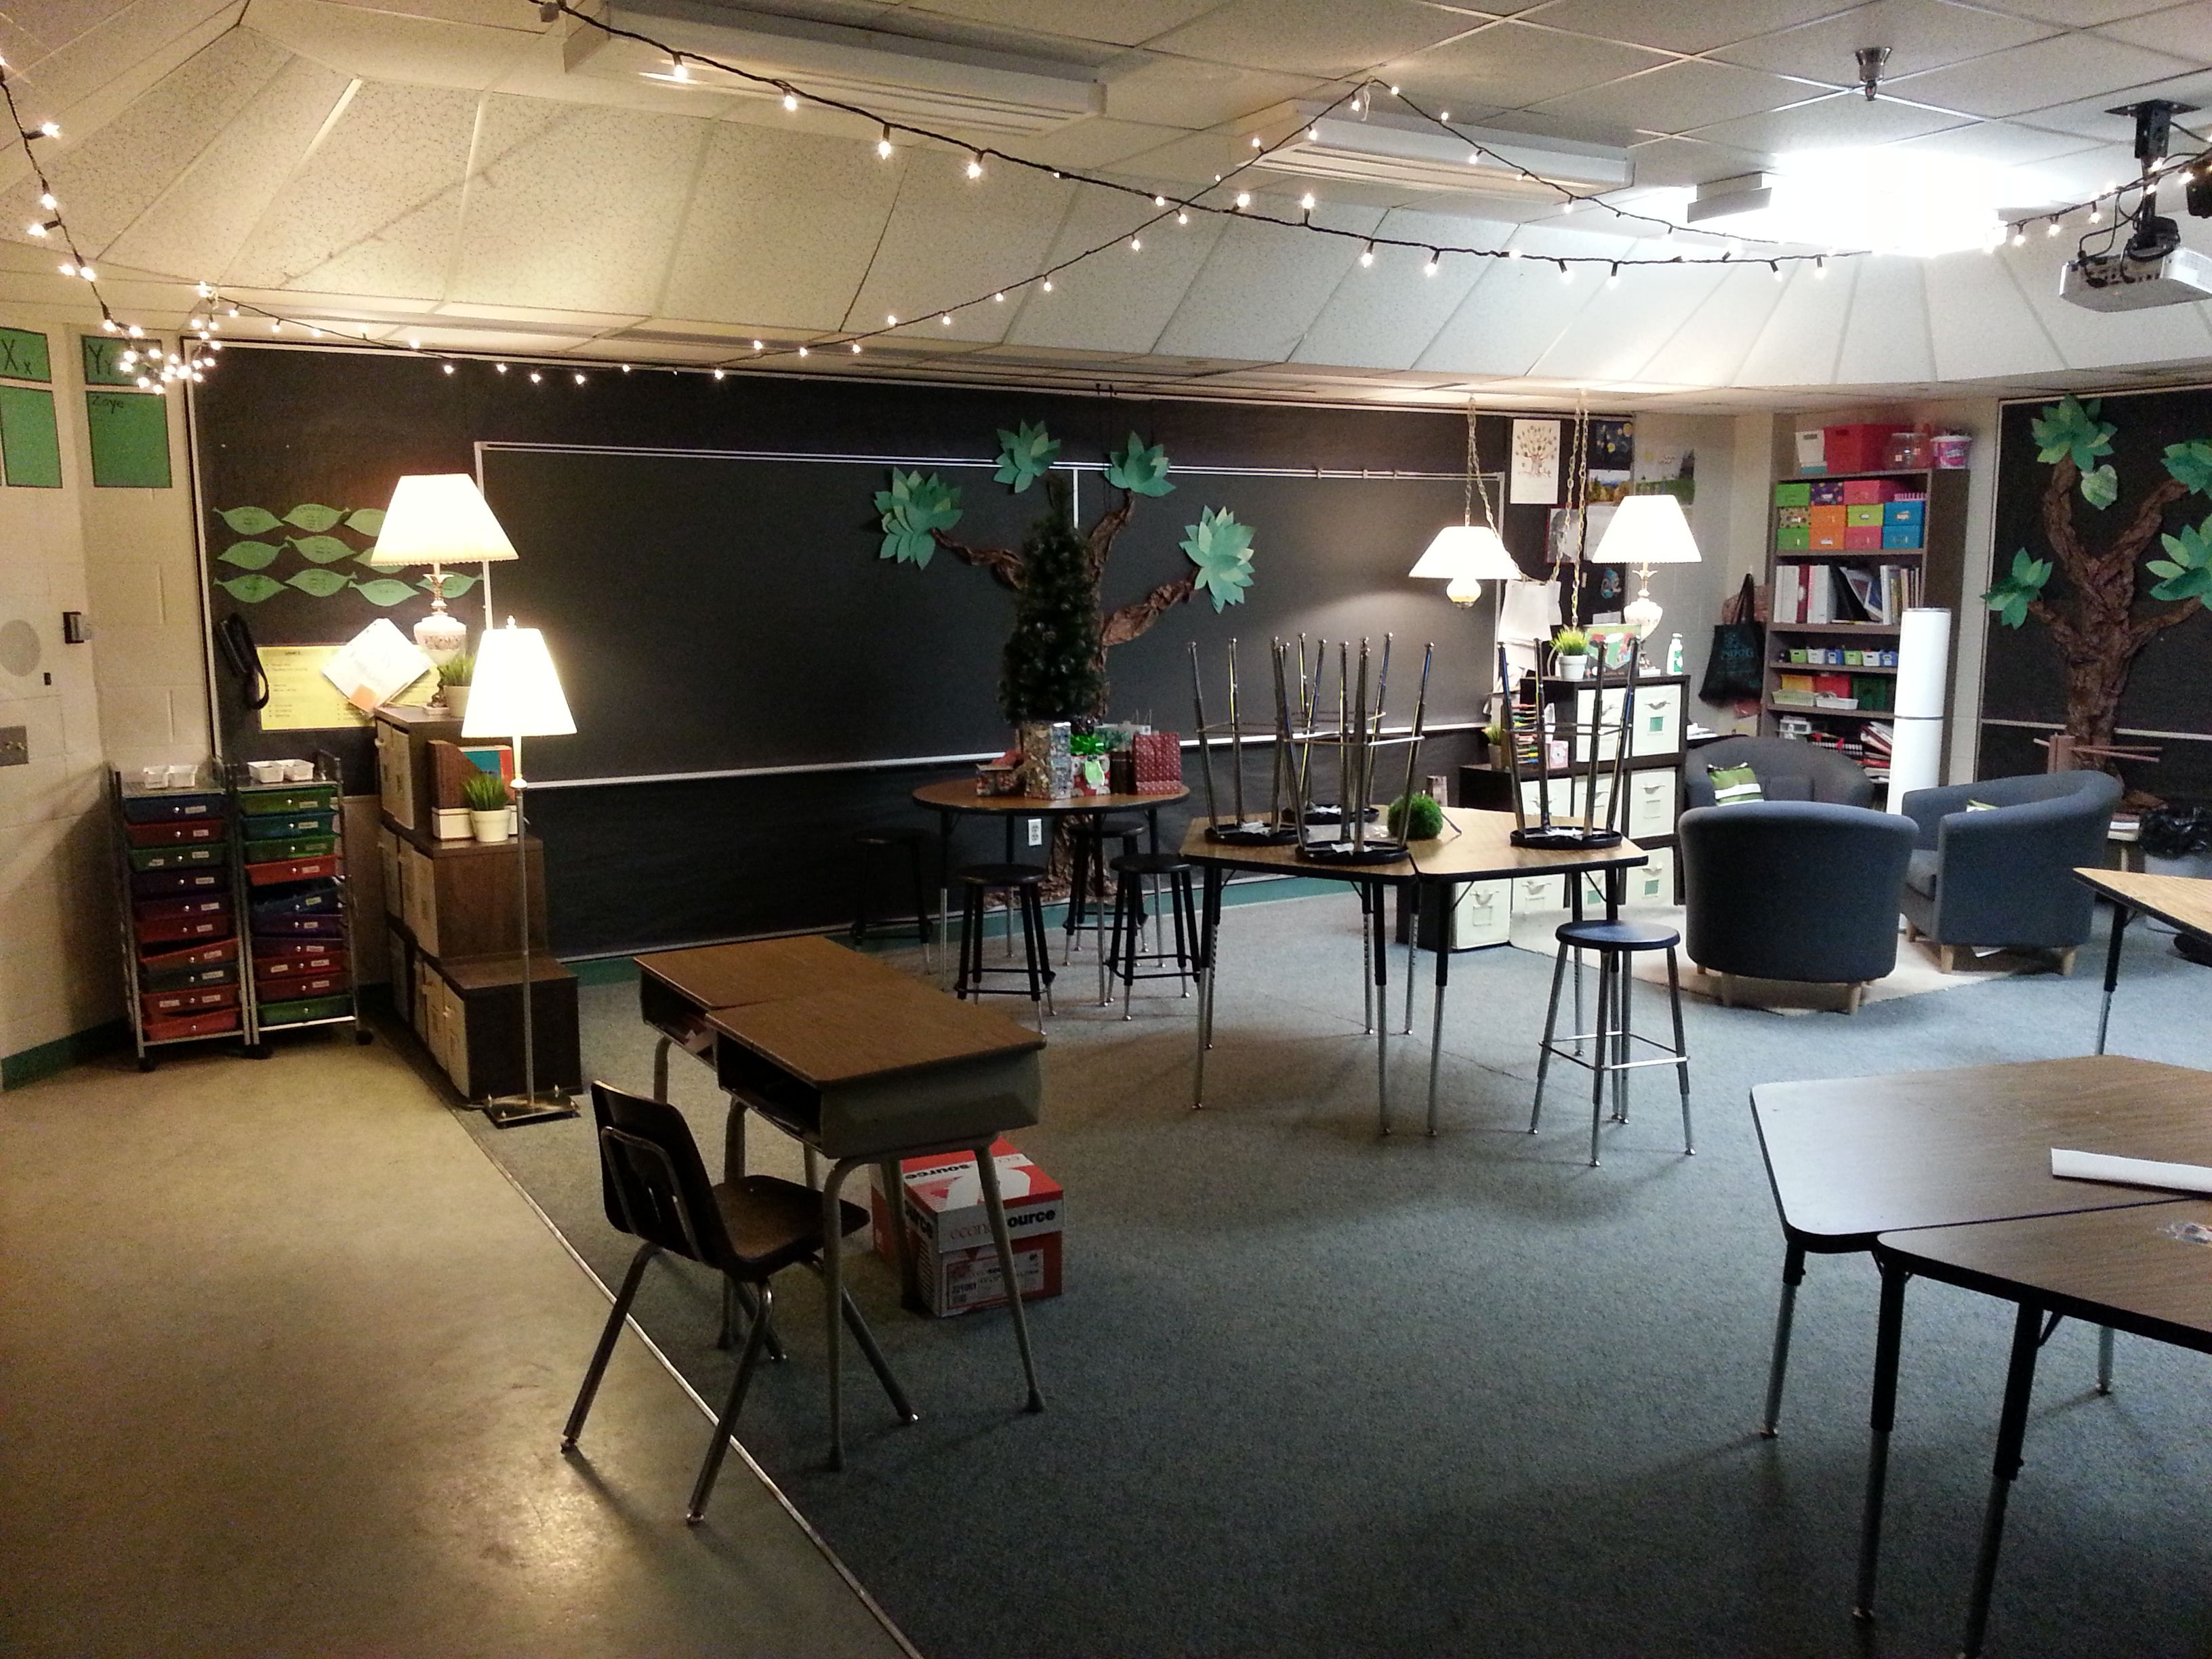 Modern middle school classroom - The Perfect Middle School Classroom Set Up This Room Has It All Lamps And Rope Lights Open Feel Non Patterned Furniture Arrangement